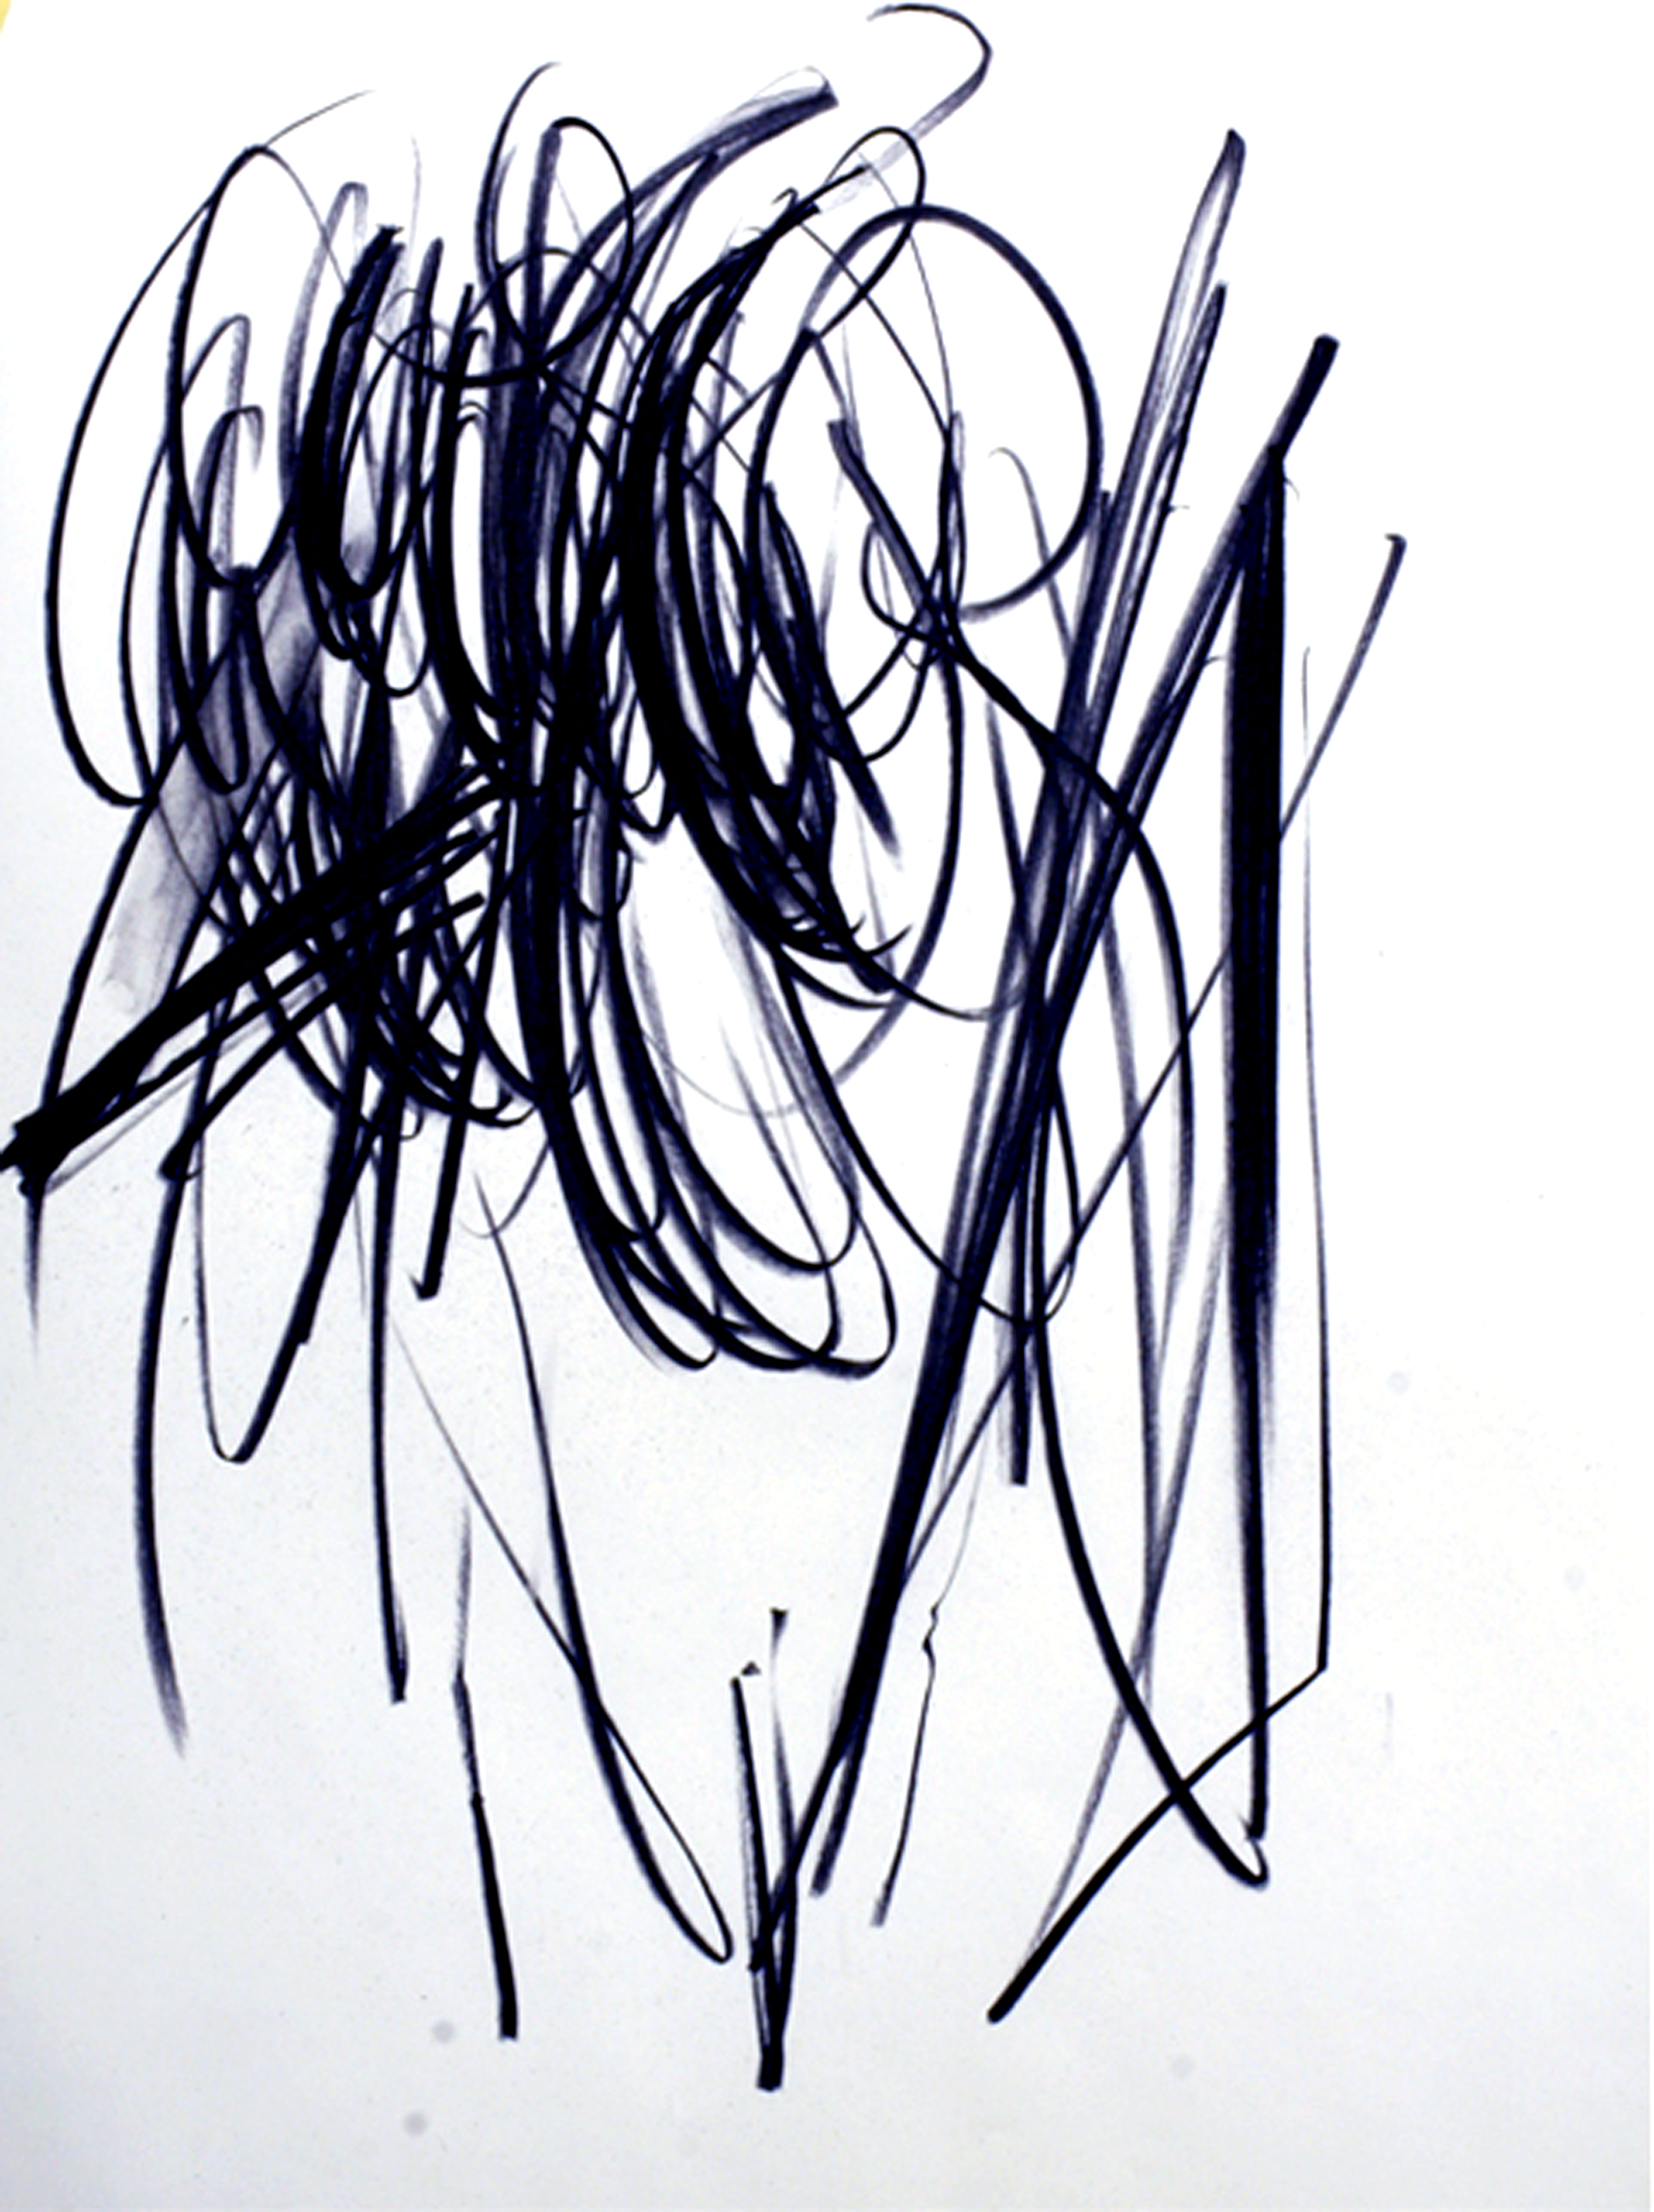 blurb-abstract-drawing-15